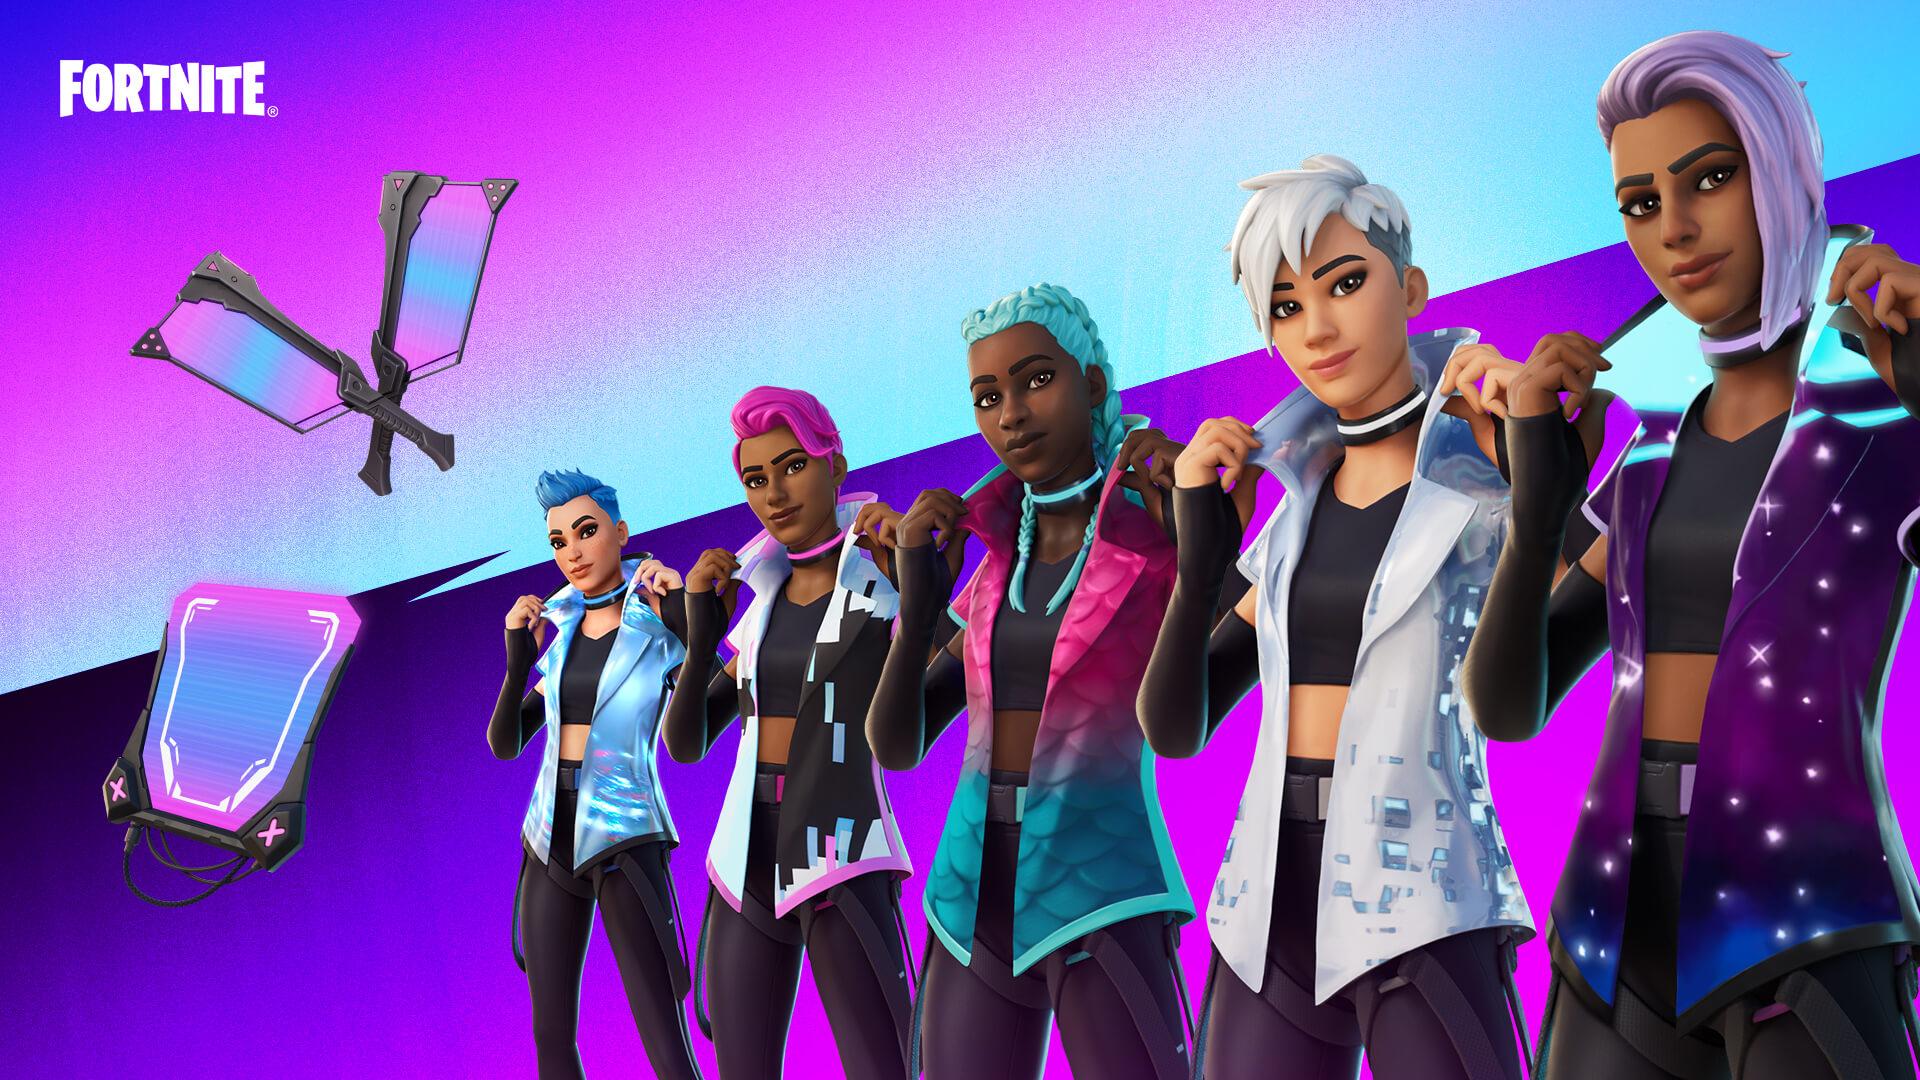 Fortnite Show Your Style Female Outfits